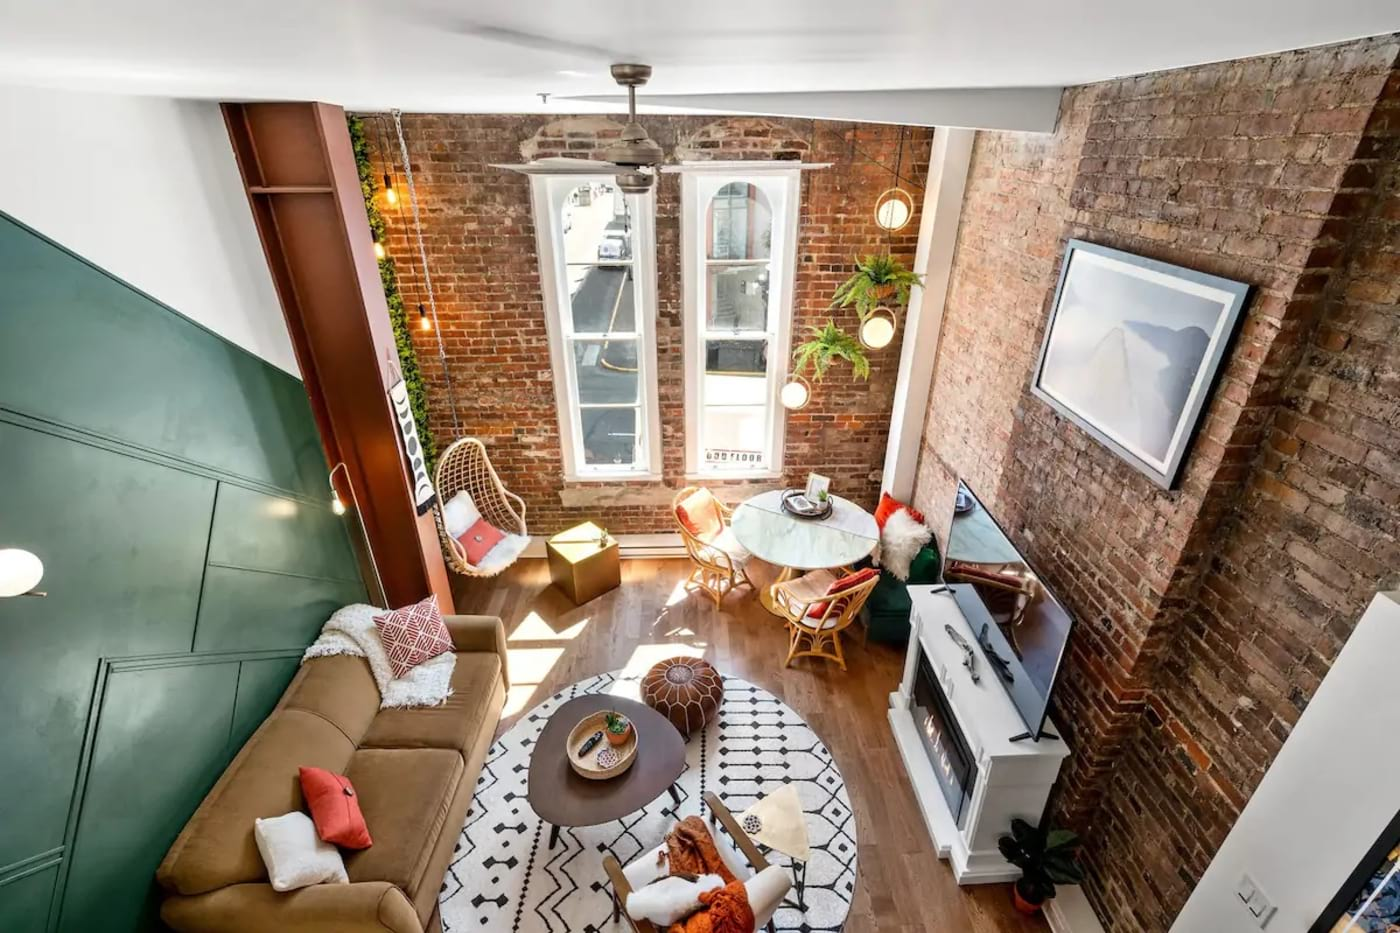 Most romantic Airbnb for couples – Boho-Chic Character Loft